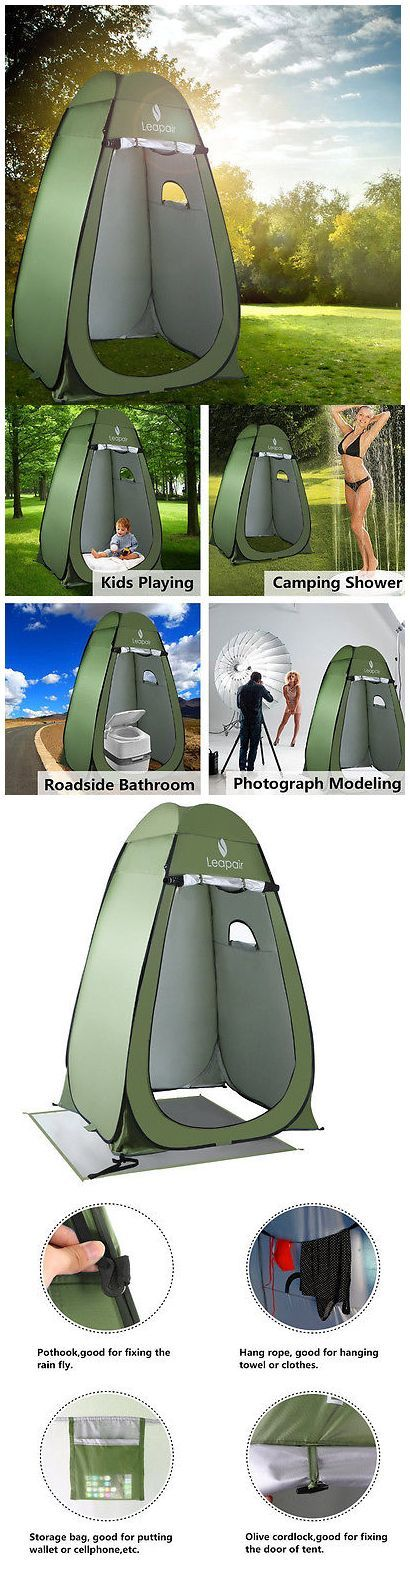 C&ing Tent Ideas - C&ing Tent Vacations Gaining Popularity - Bargain or Free C&sites Close to You u003eu003eu003e You can get additional details at the iu2026 & Camping Tent Ideas - Camping Tent Vacations Gaining Popularity ...